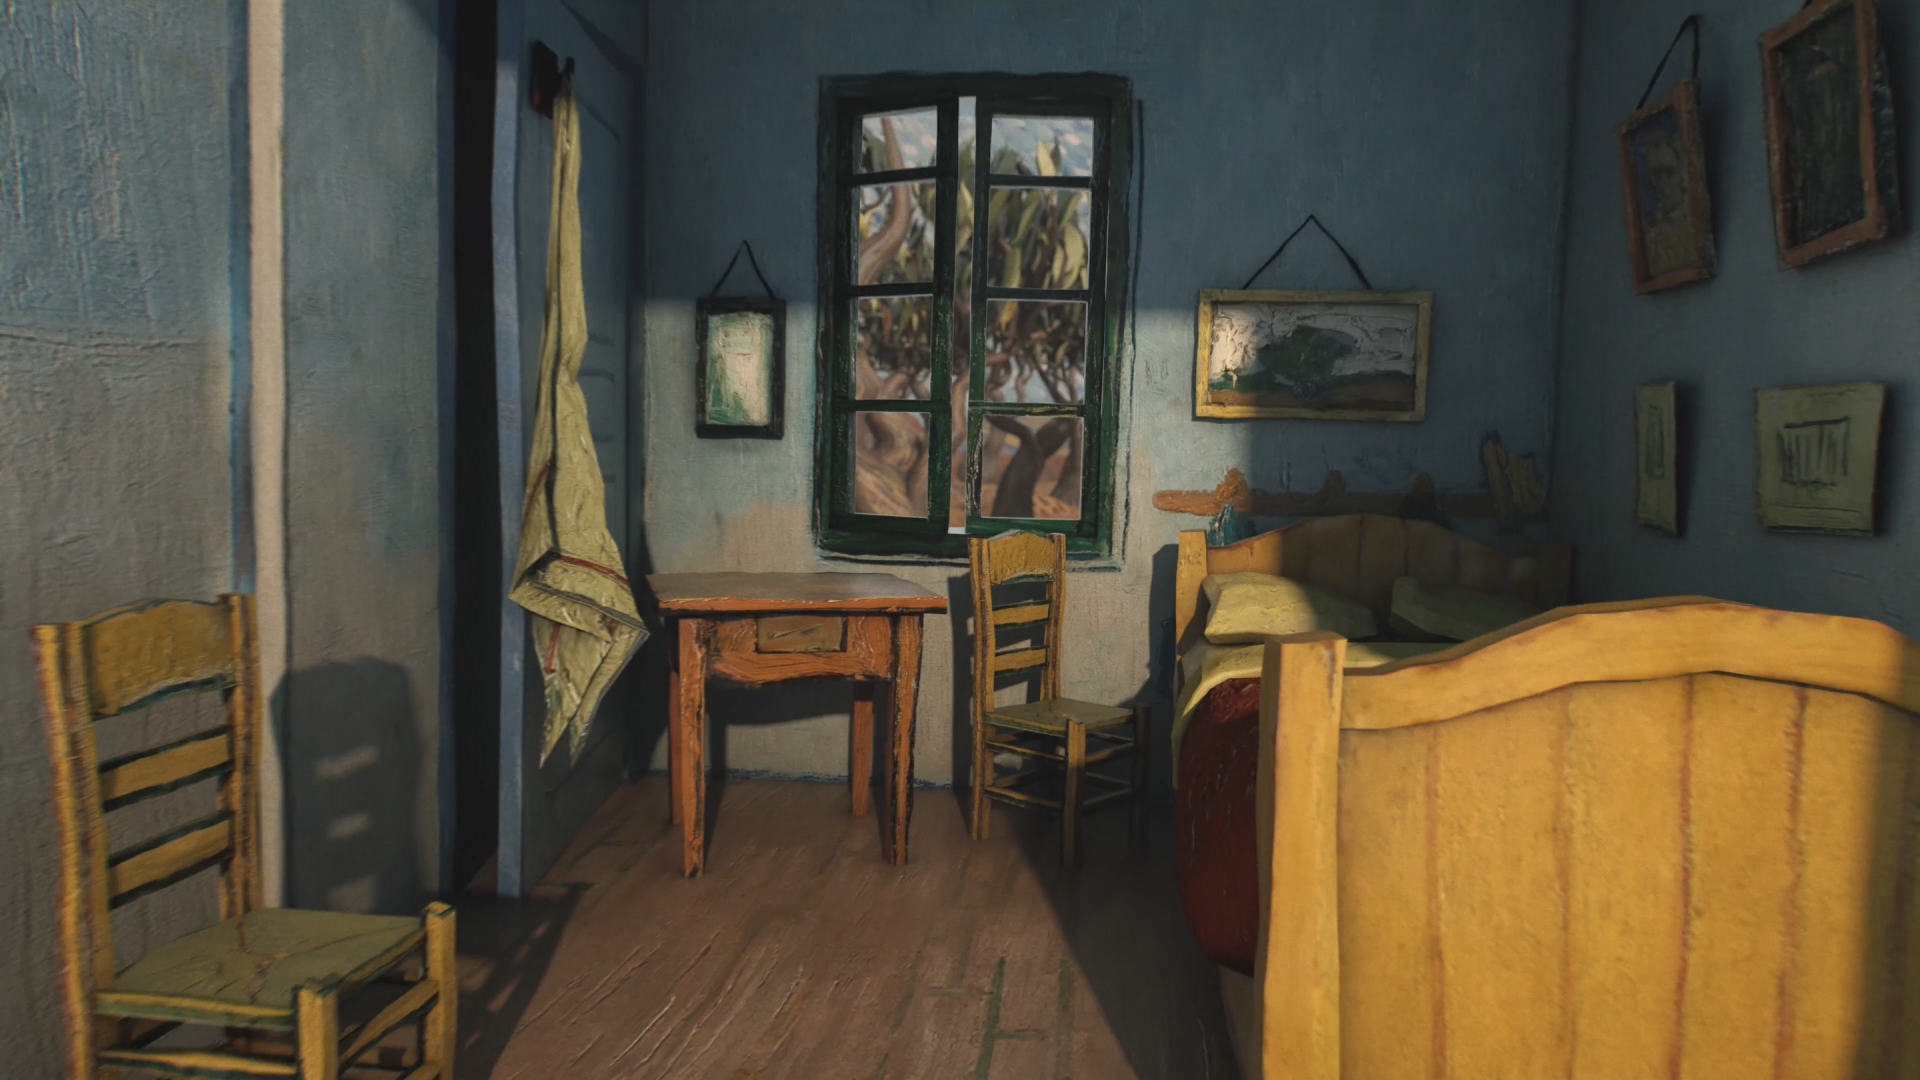 Short video for Breakfast – No Blue Without Yellow, un viaggio nei quadri di Van Gogh